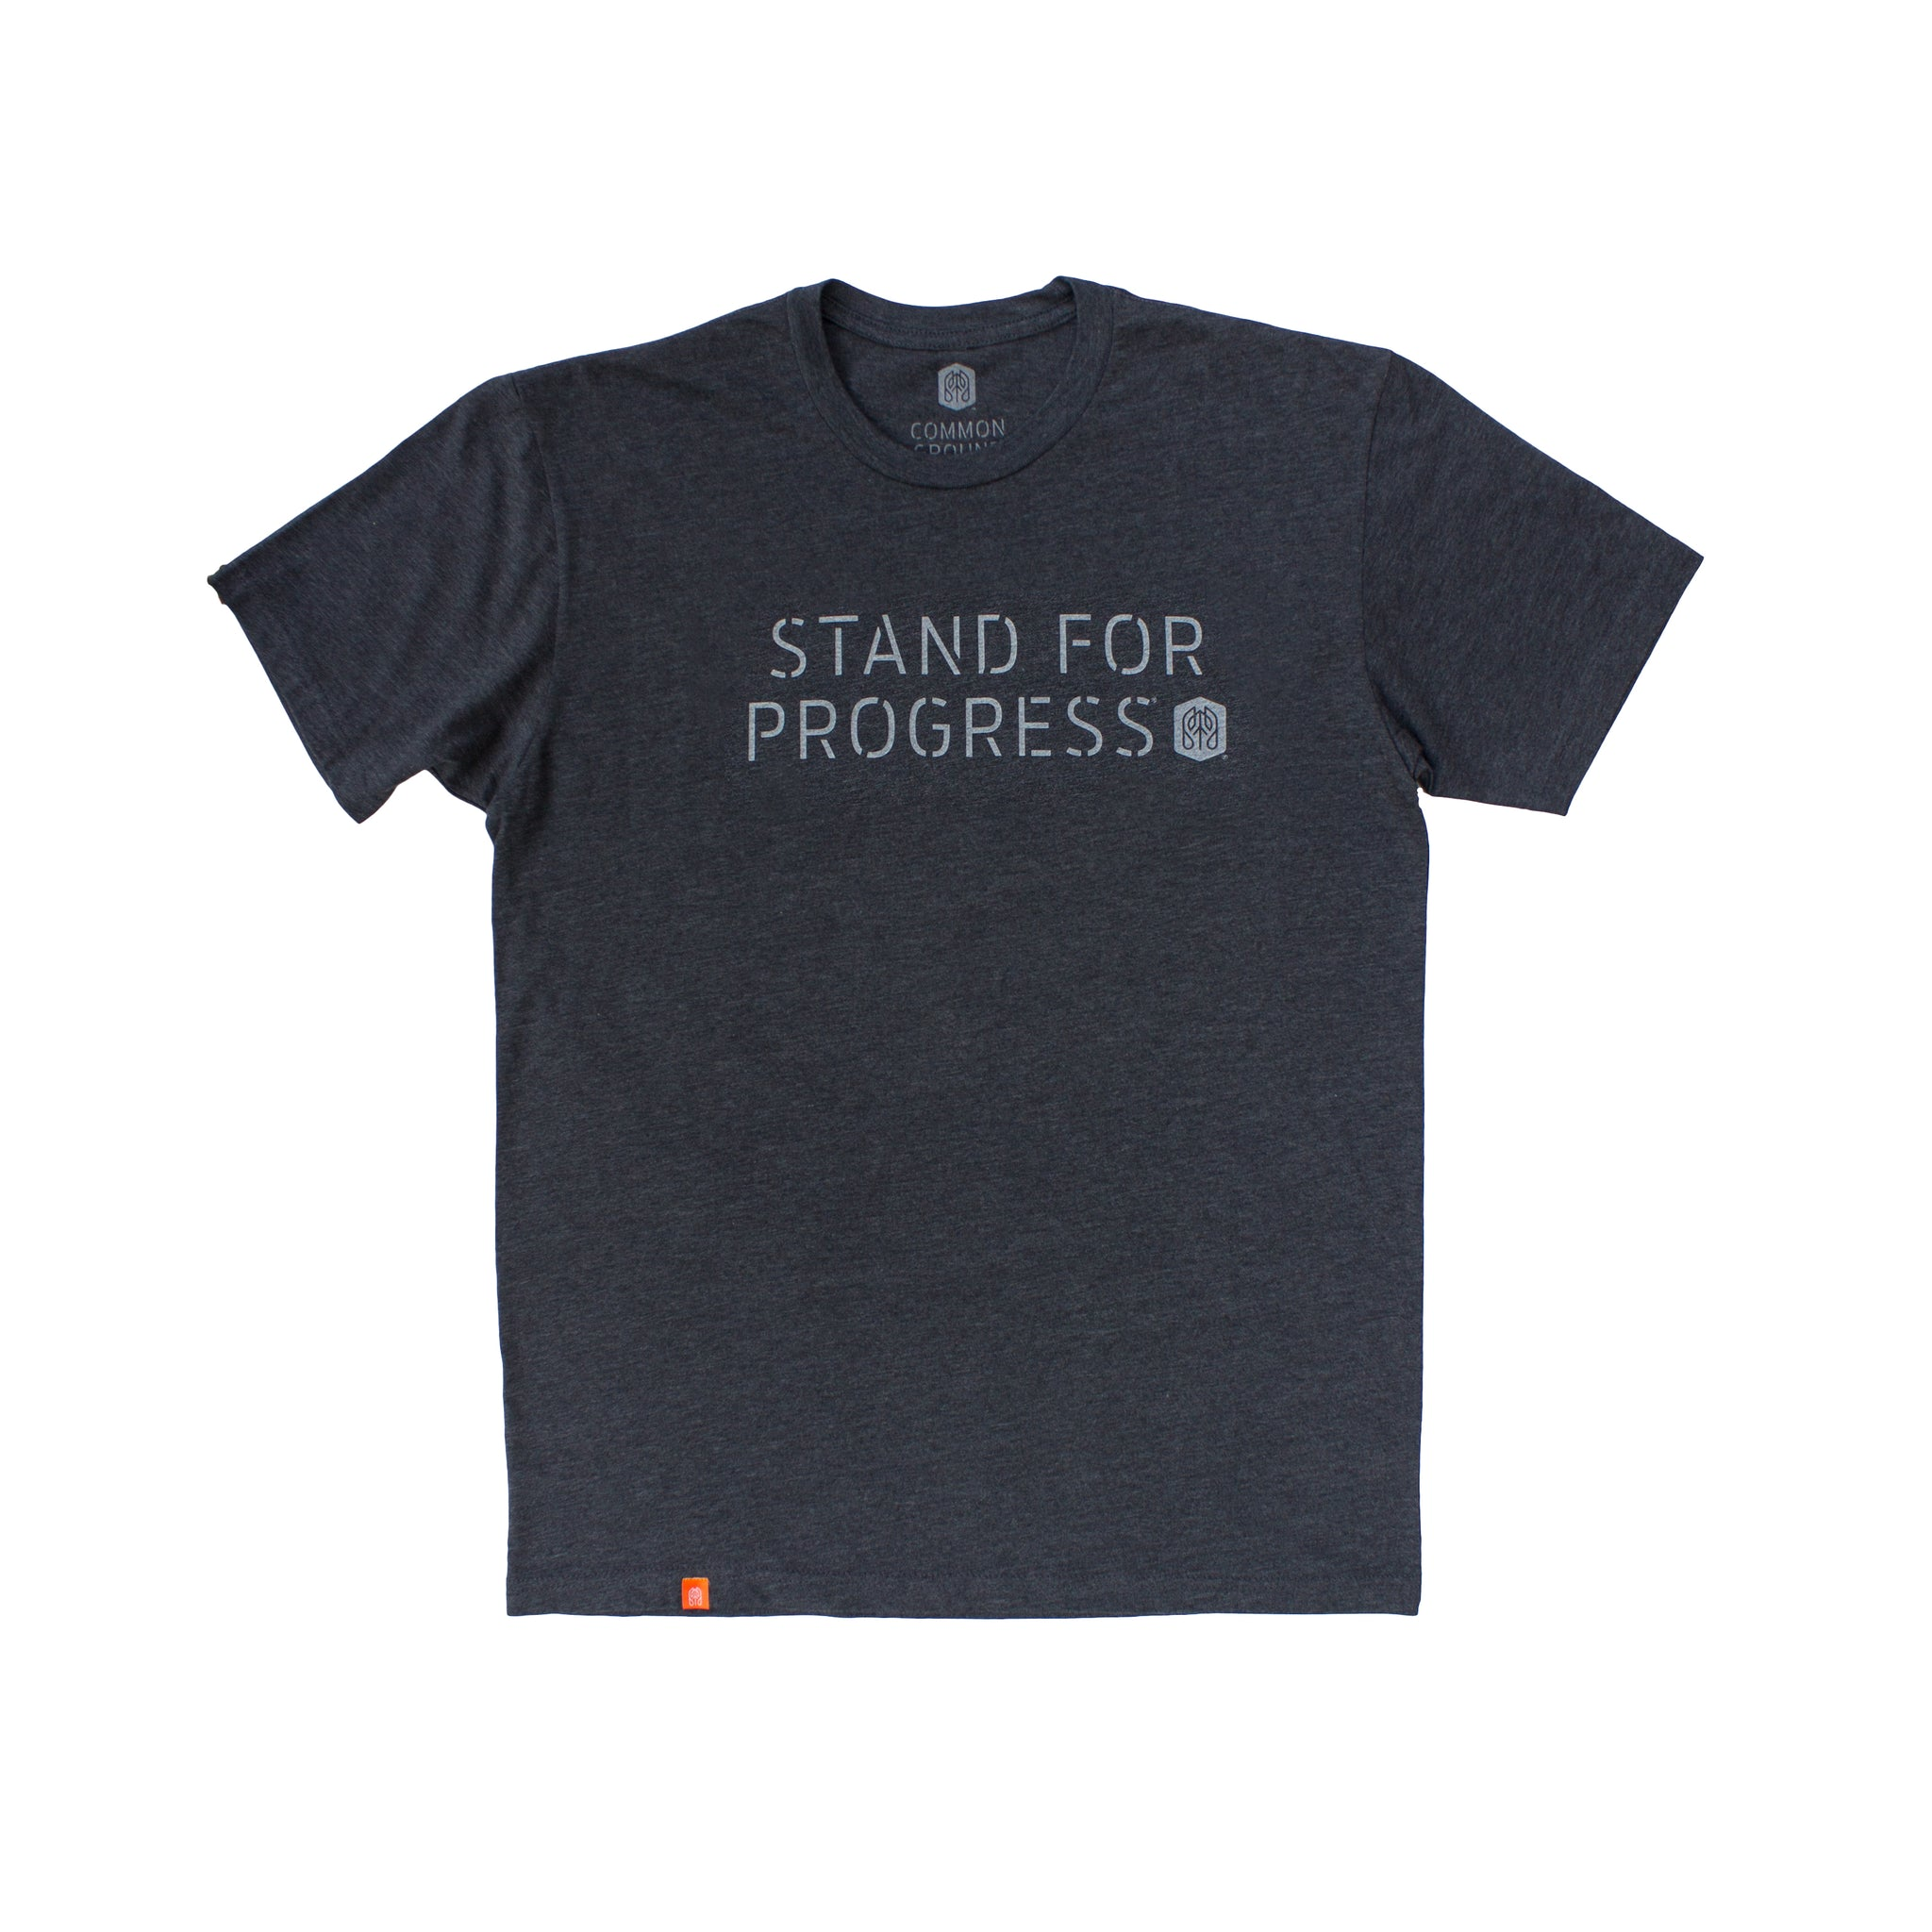 Charcoal - Common Ground T shirt Front View